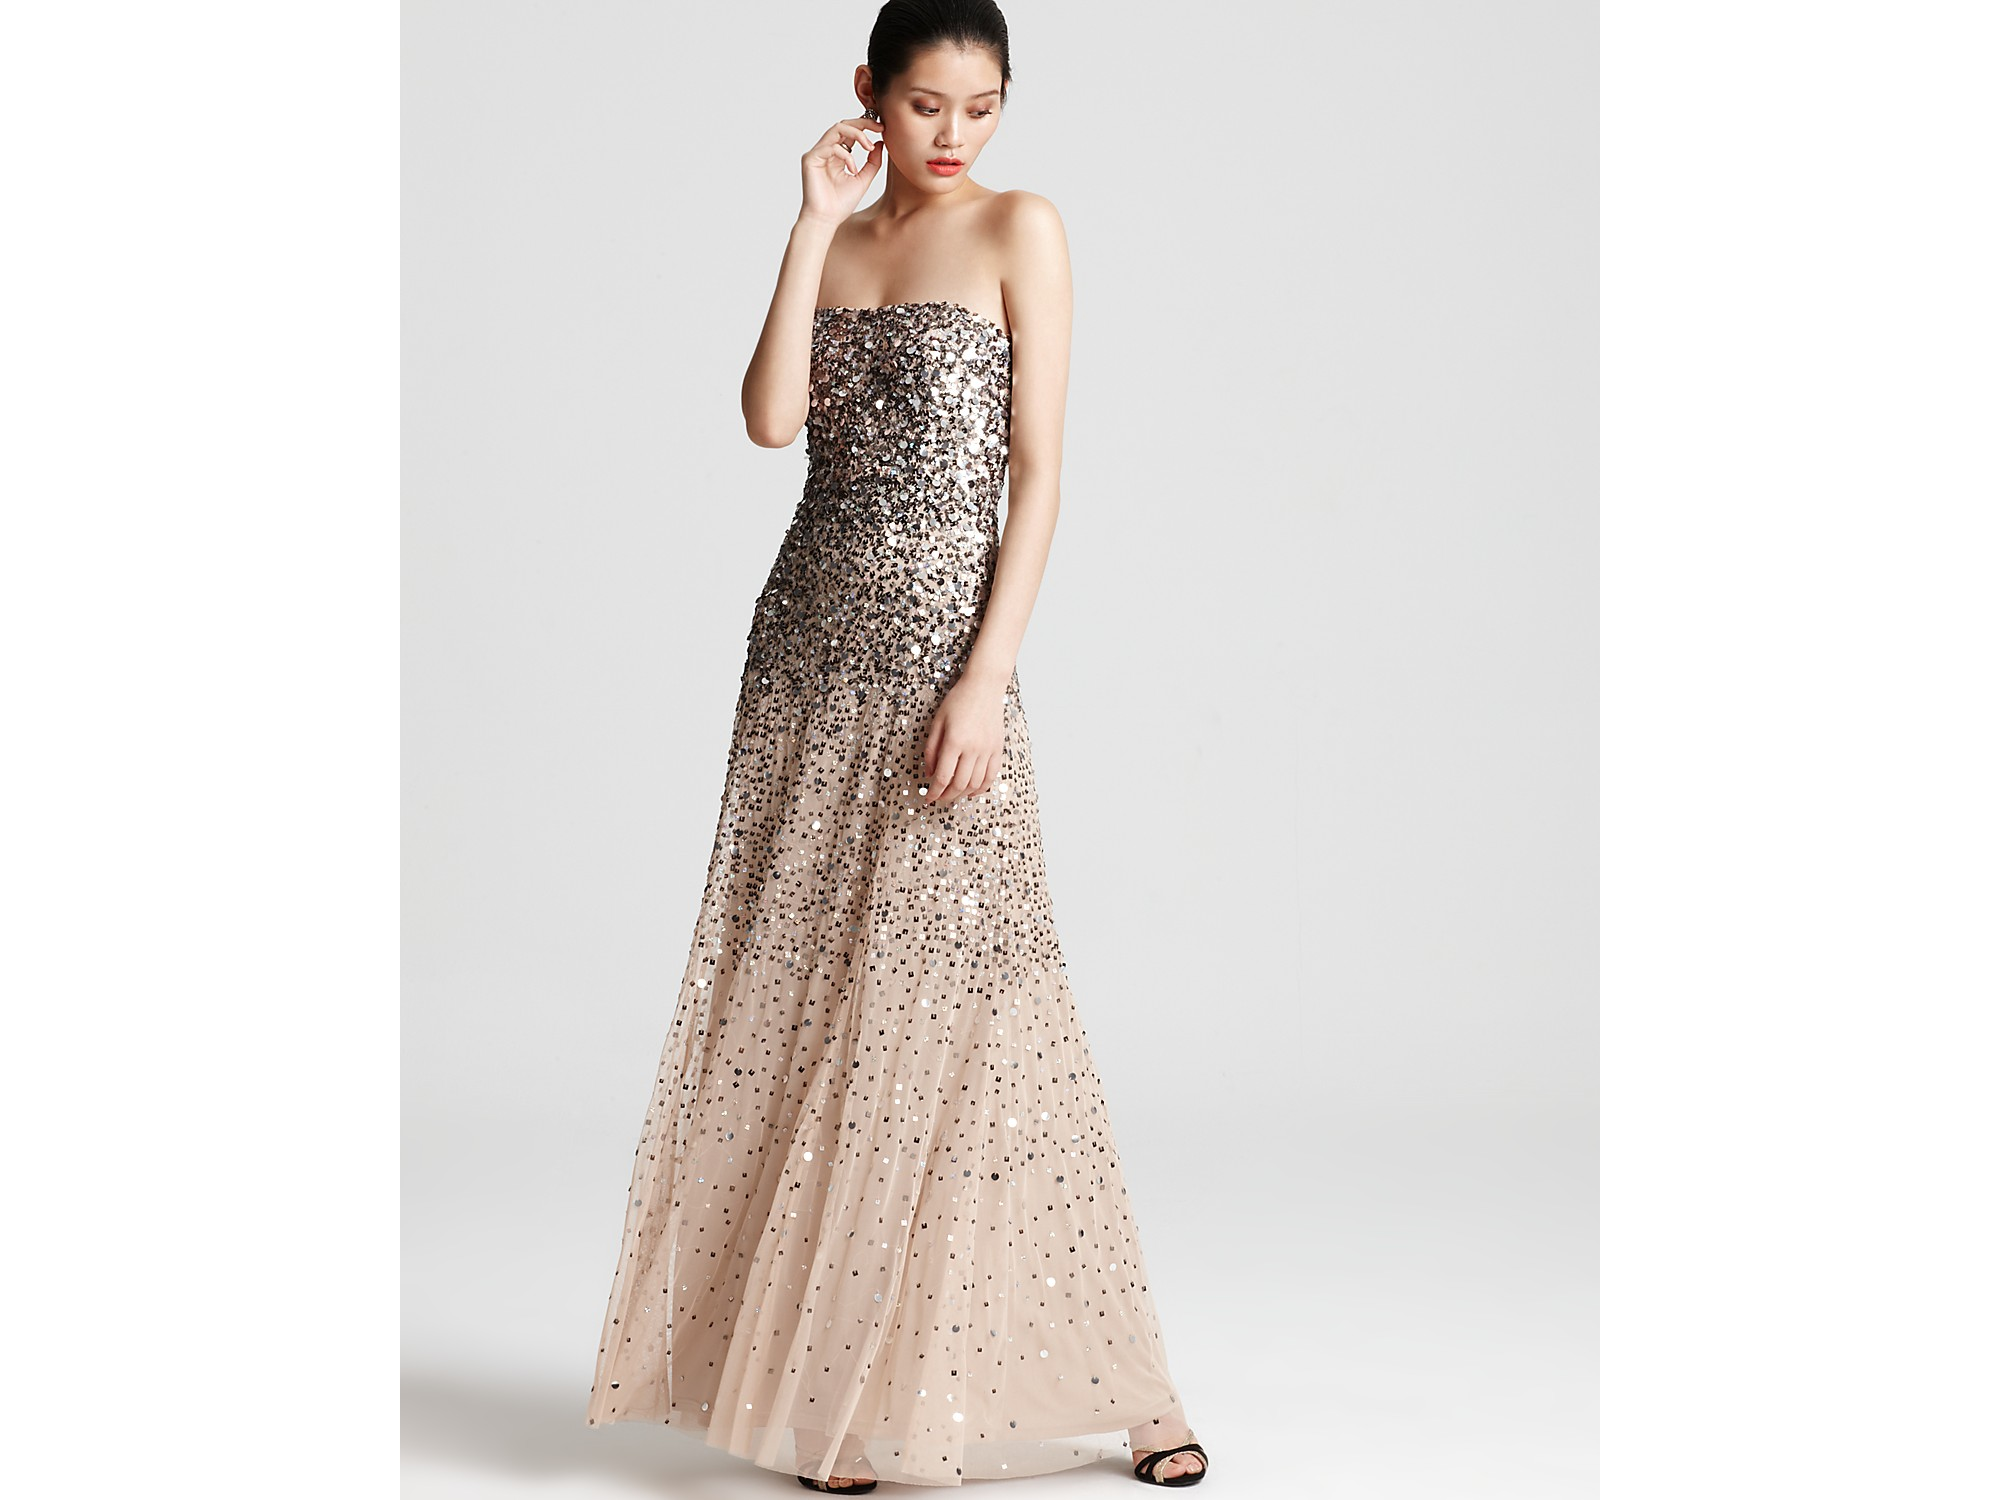 Lyst - Adrianna papell Gown Sequin Strapless in Natural